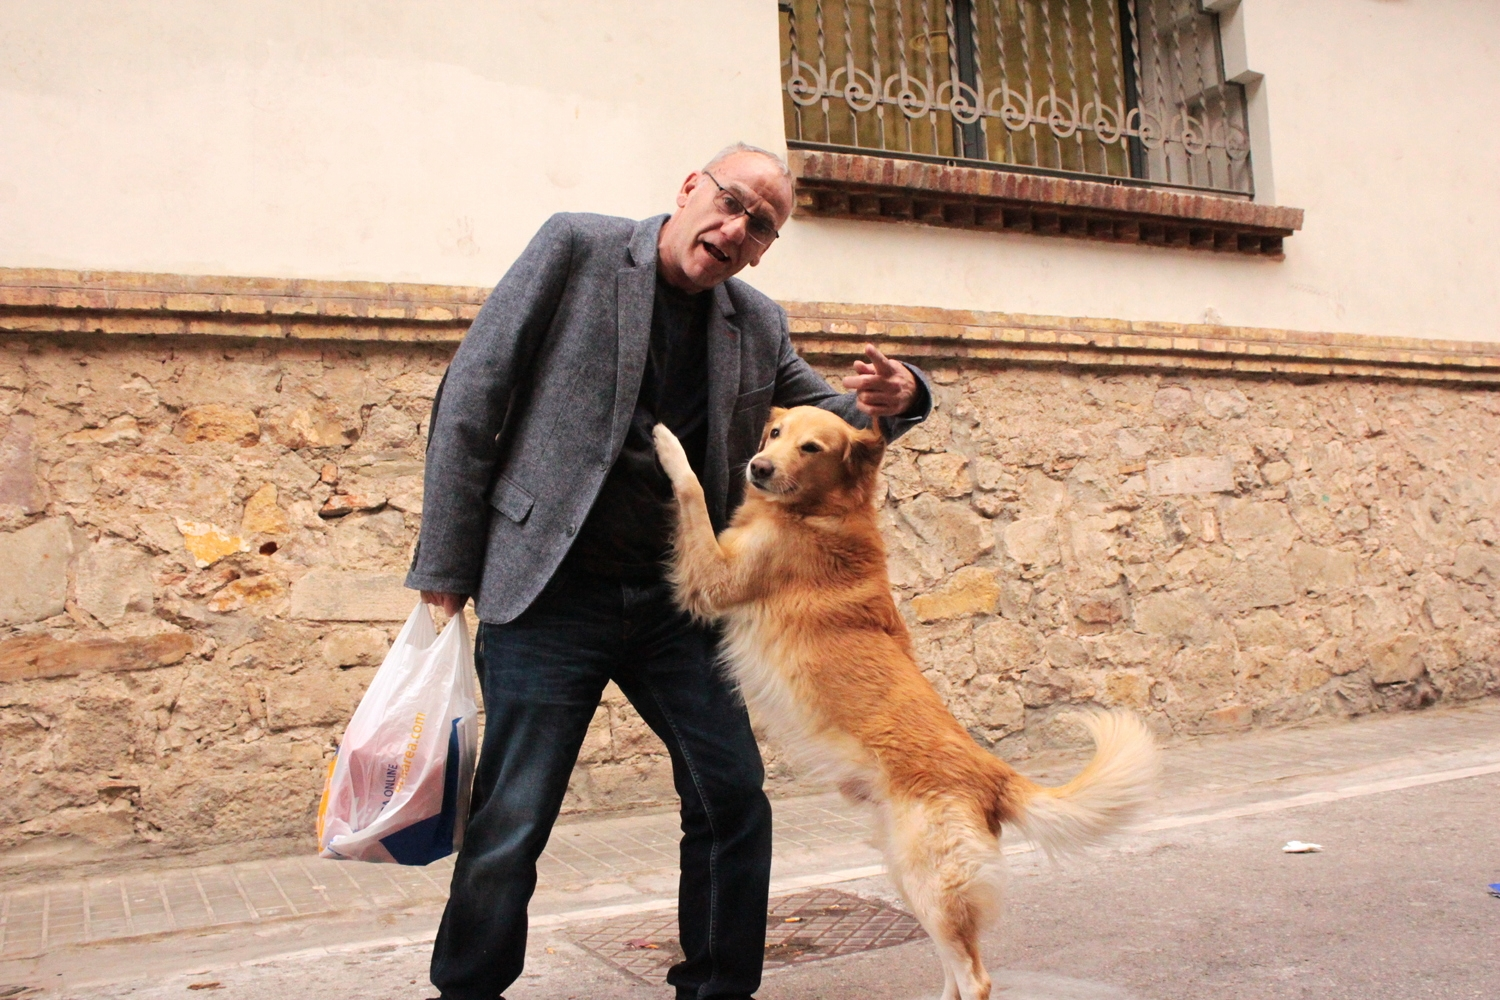 Friendly local and his dog Batista. Perfect duo.